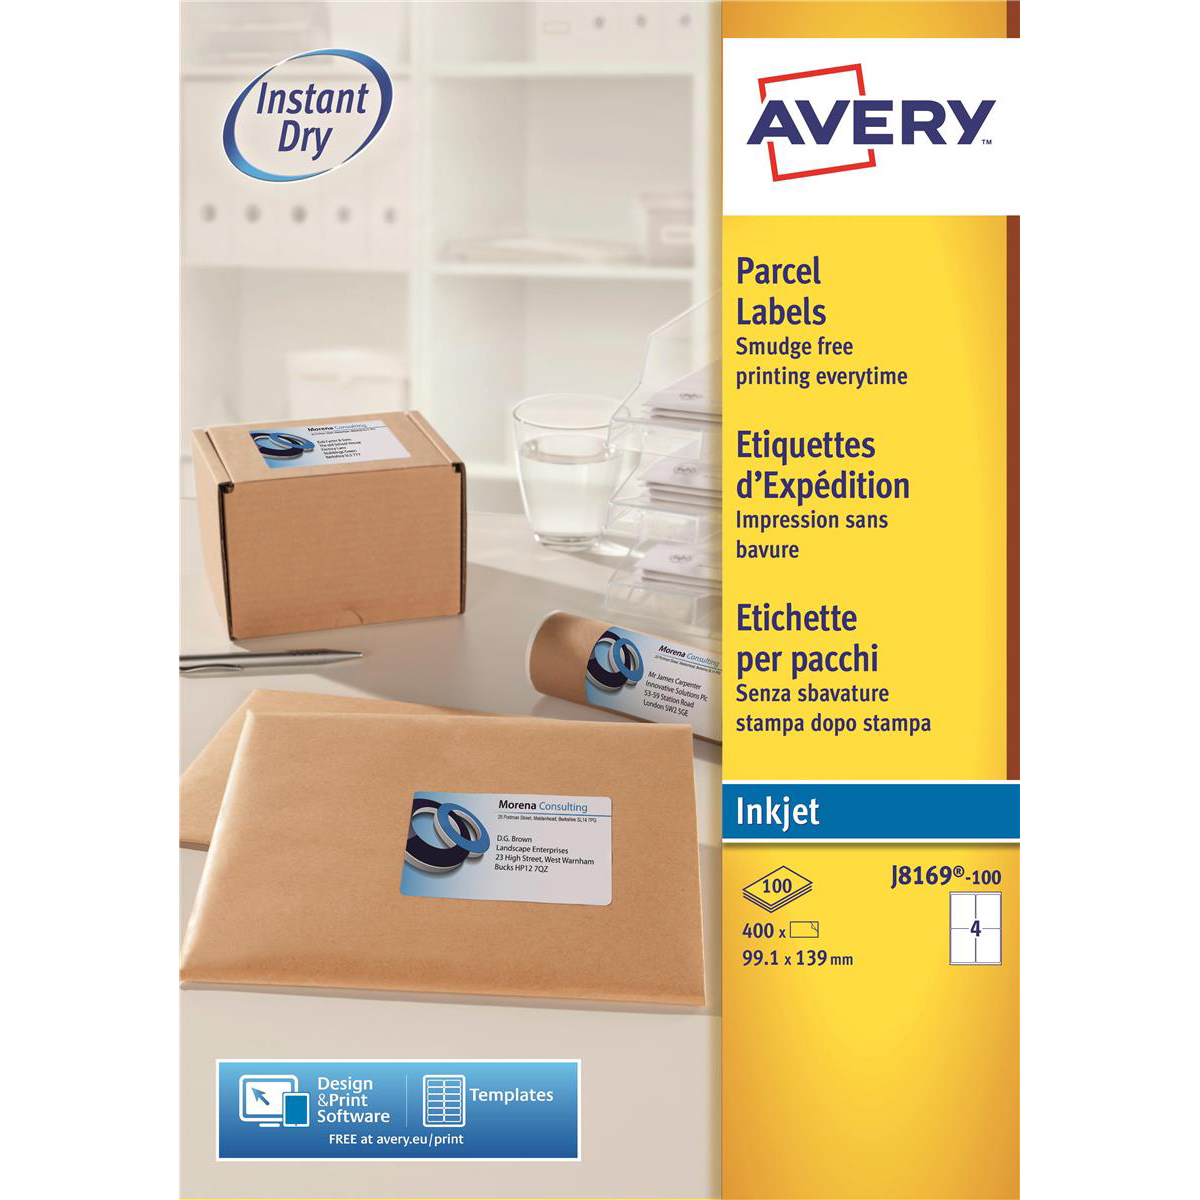 Avery Quick DRY Addressing Labels Inkjet 4 per Sheet 139x99.1mm White Ref J8169-100 [400 Labels]